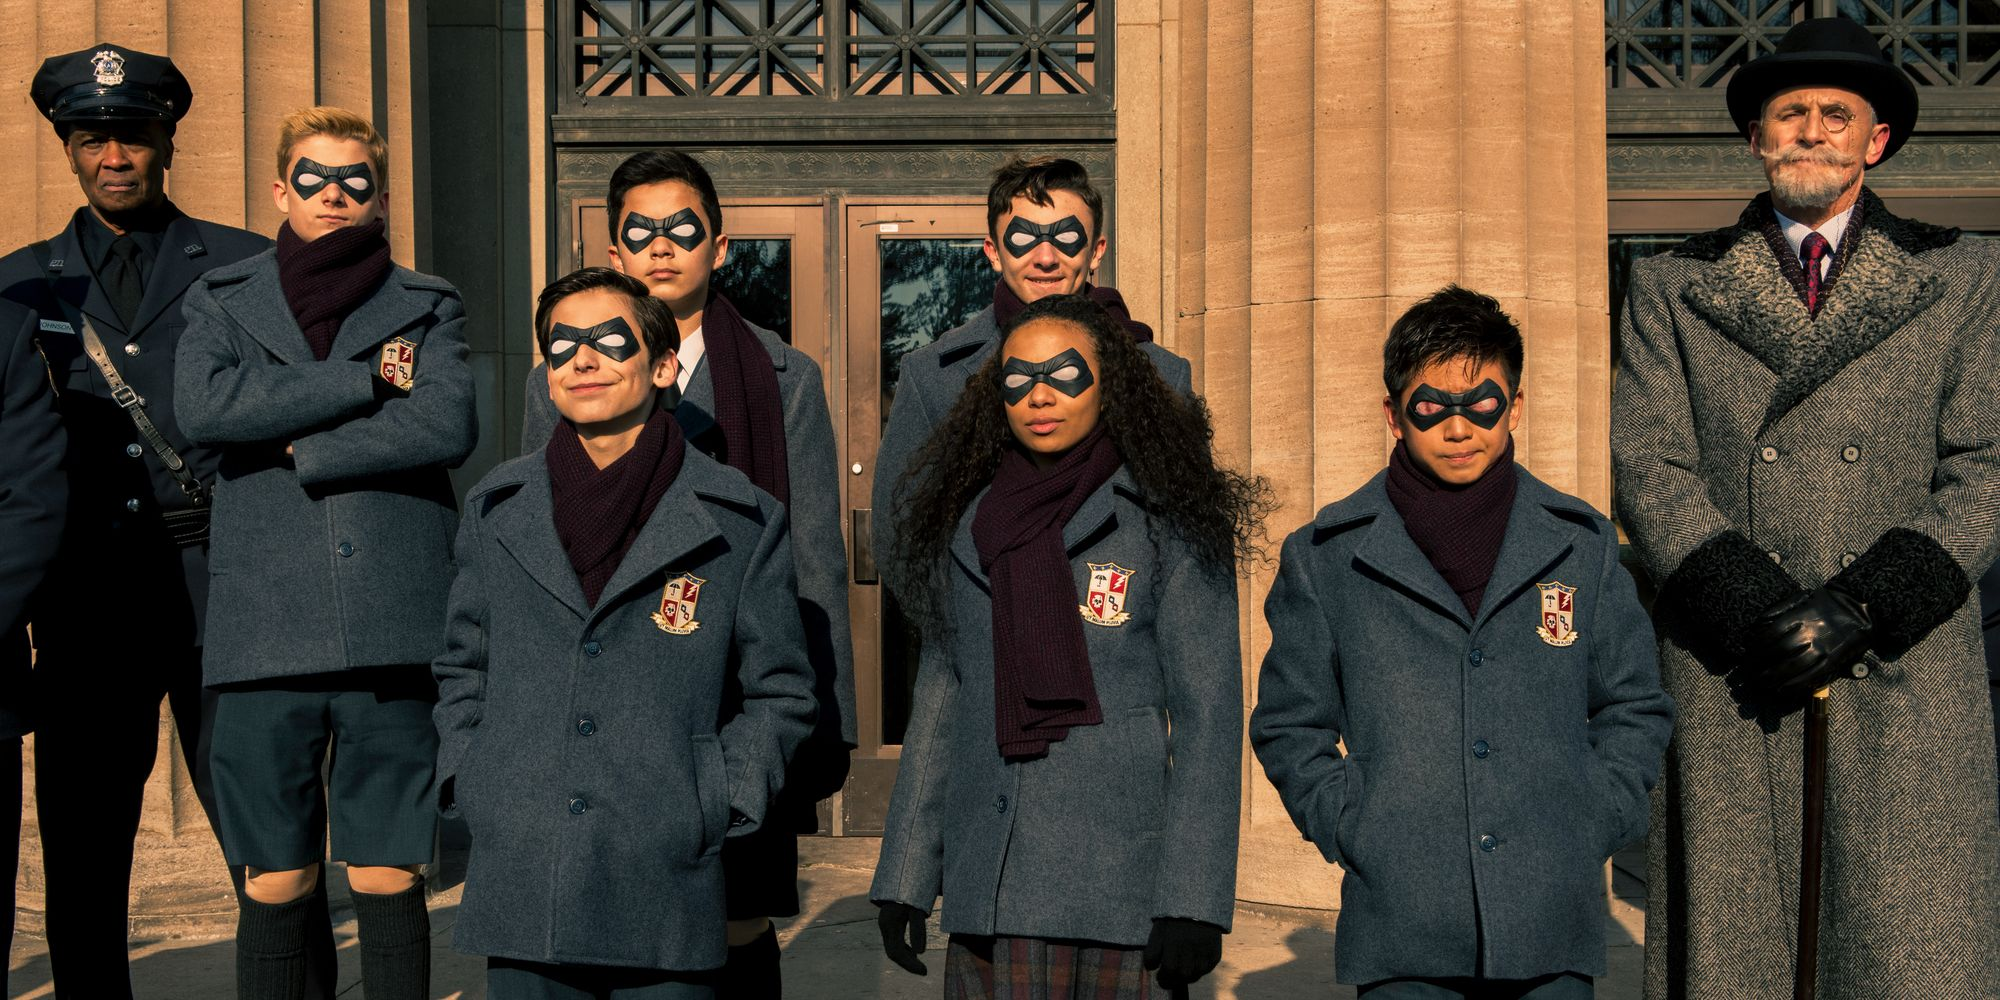 Review Netflix's The Umbrella Academy